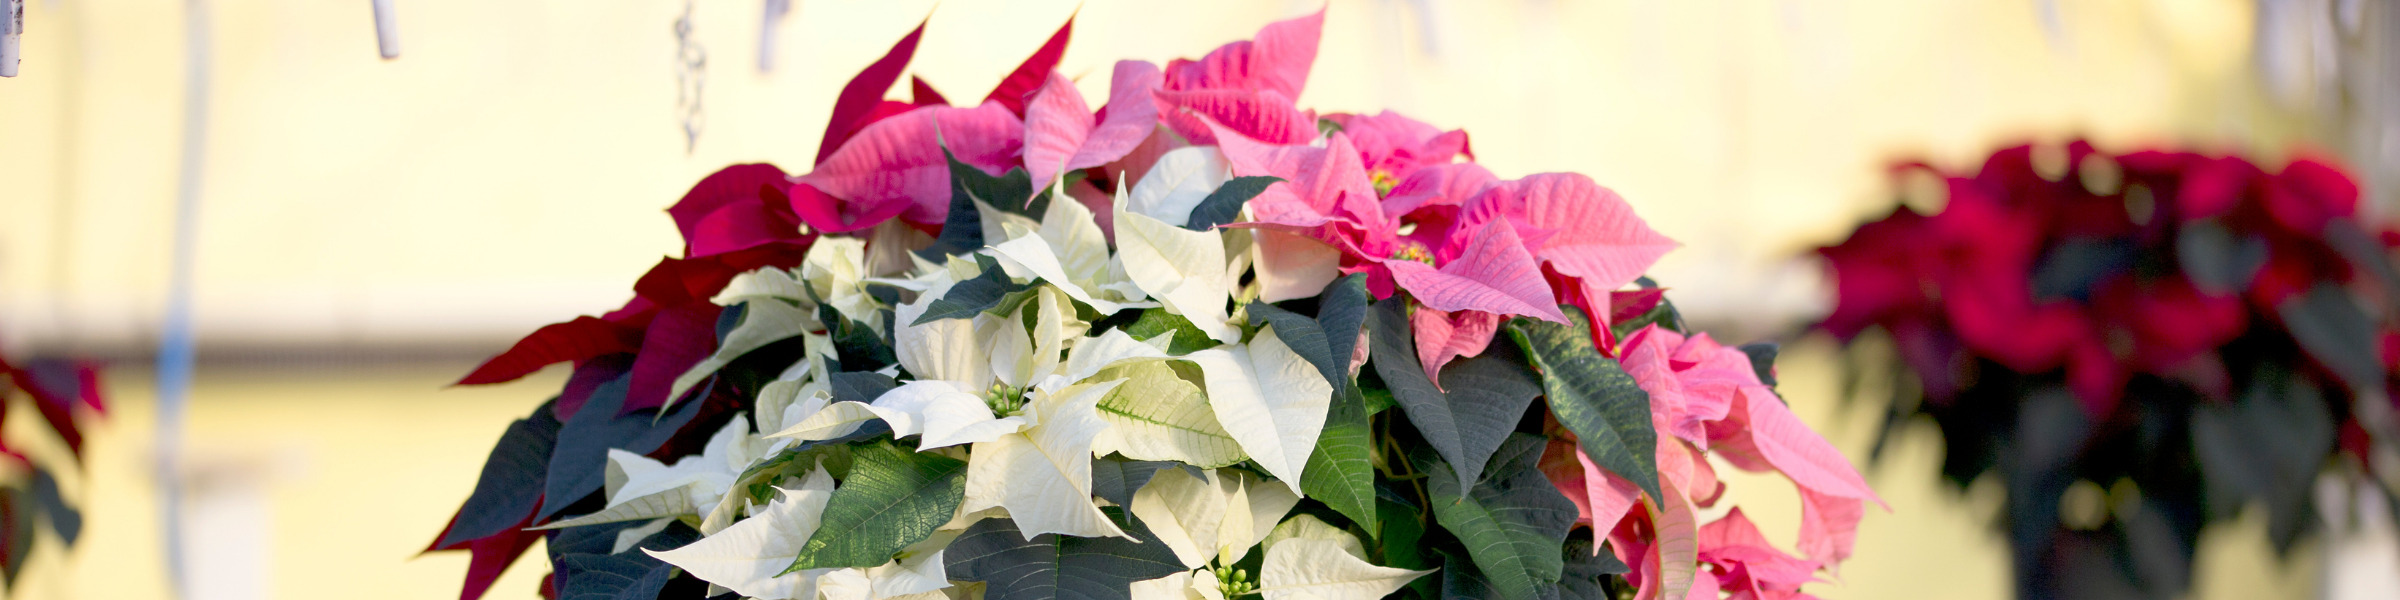 Terms of Use Header Image Poinsettia Sales